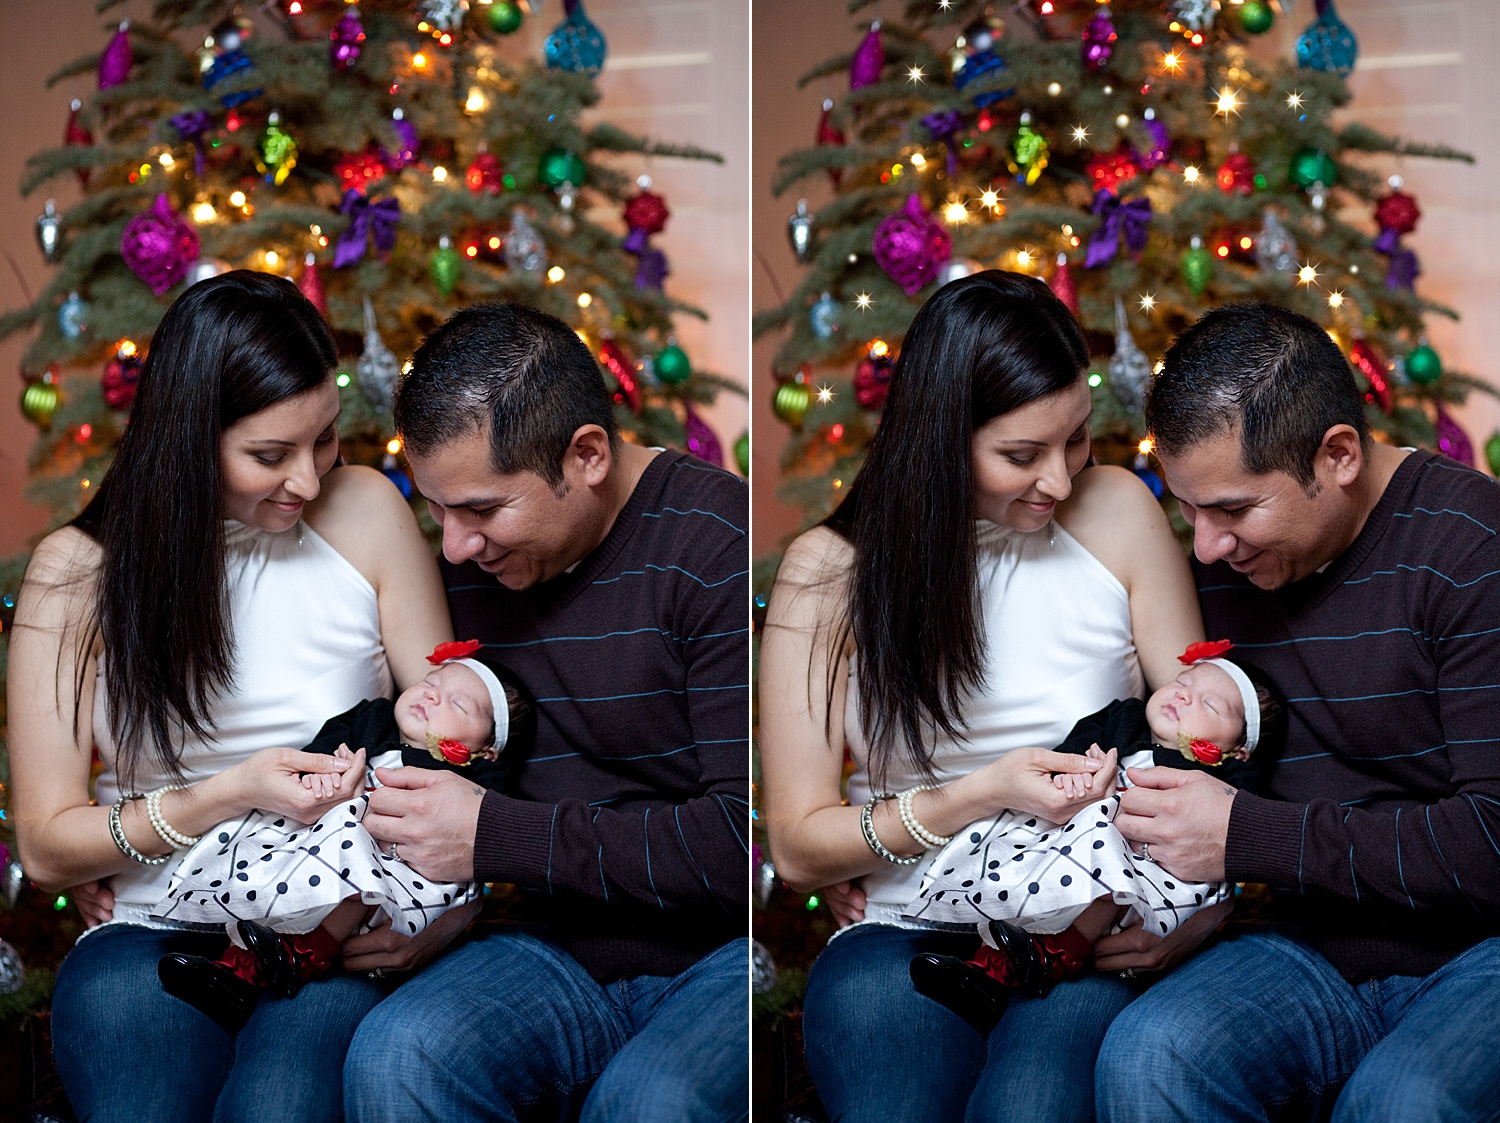 Image: Before and after on another photo. This is more subtle and only uses white twinkle lights.